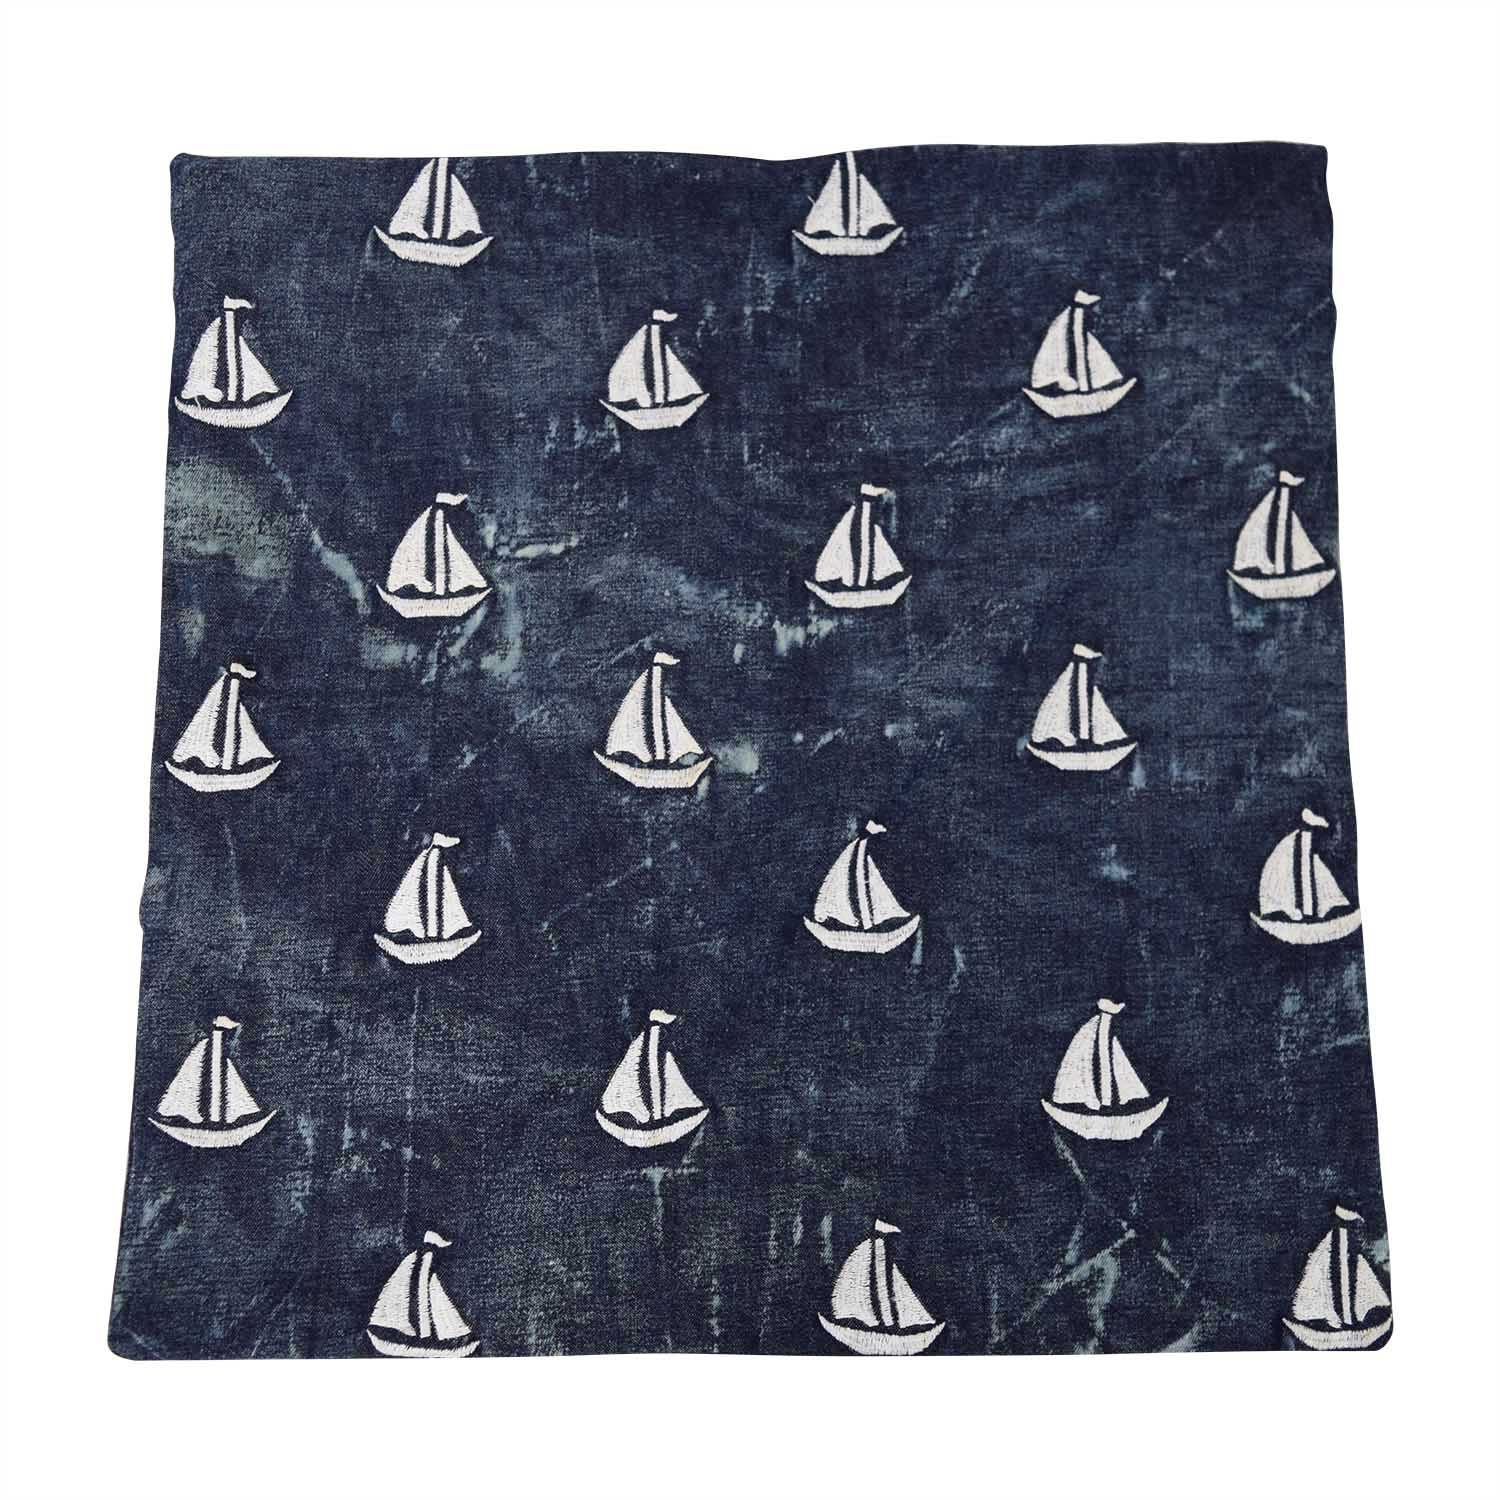 shop Obeetee Sailboat Cushion Cover Obeetee